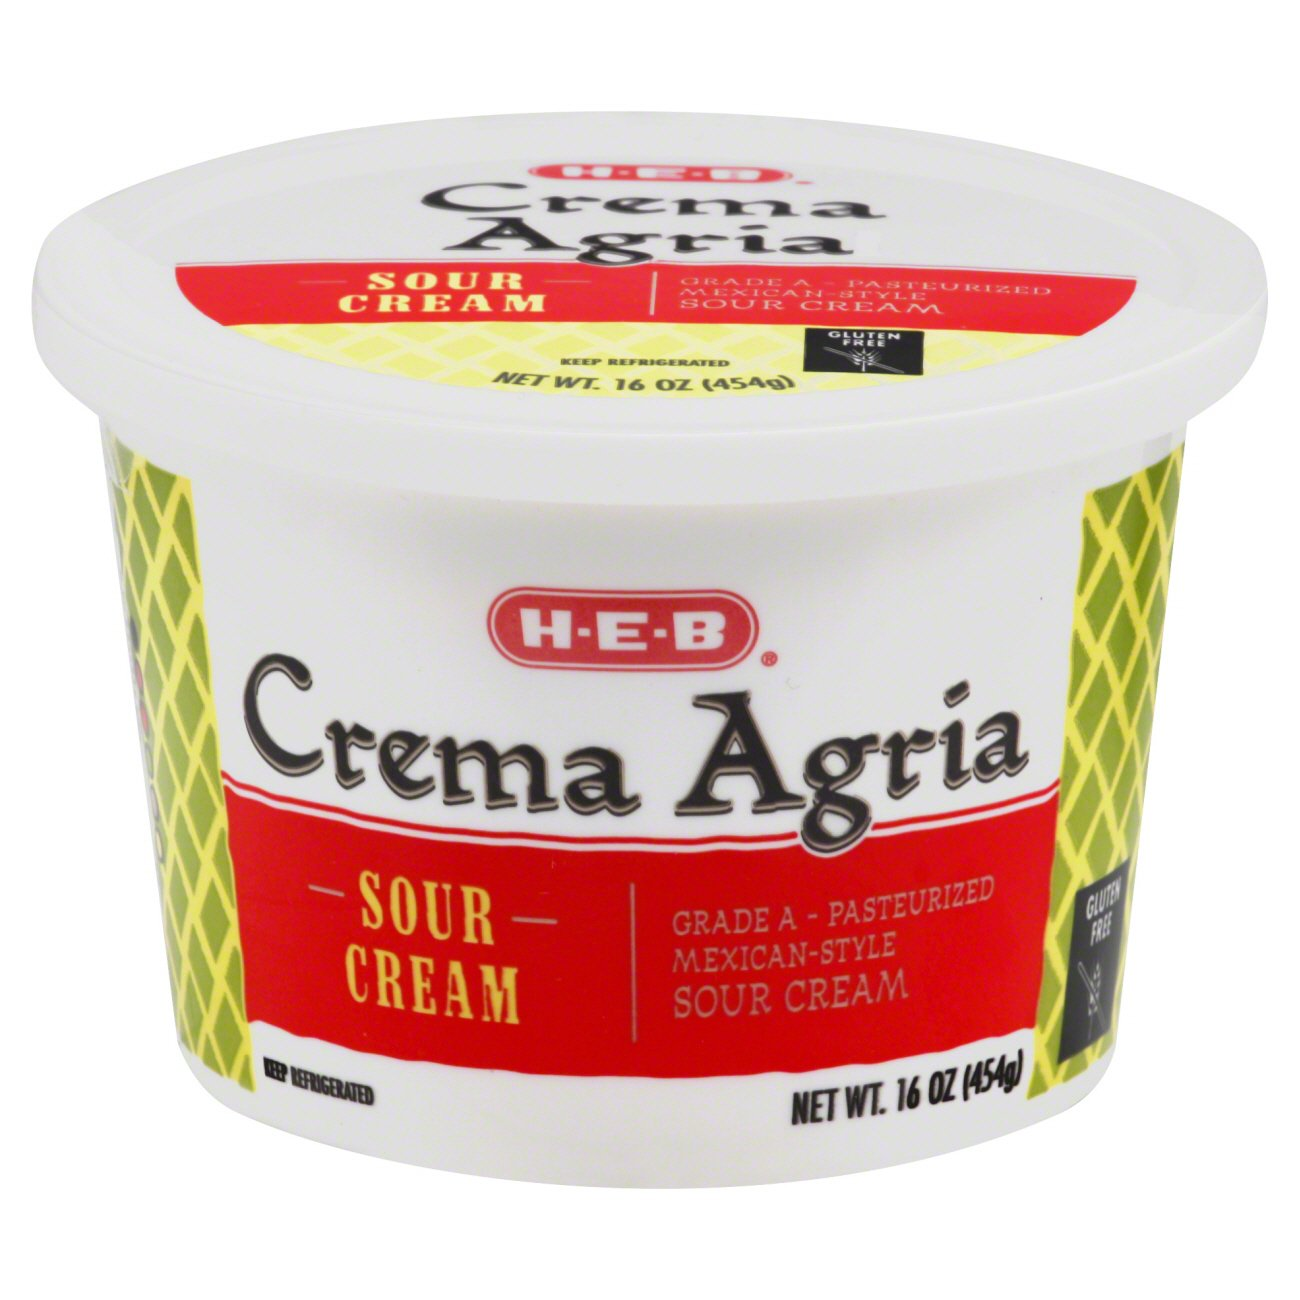 Image result for crema agria free image